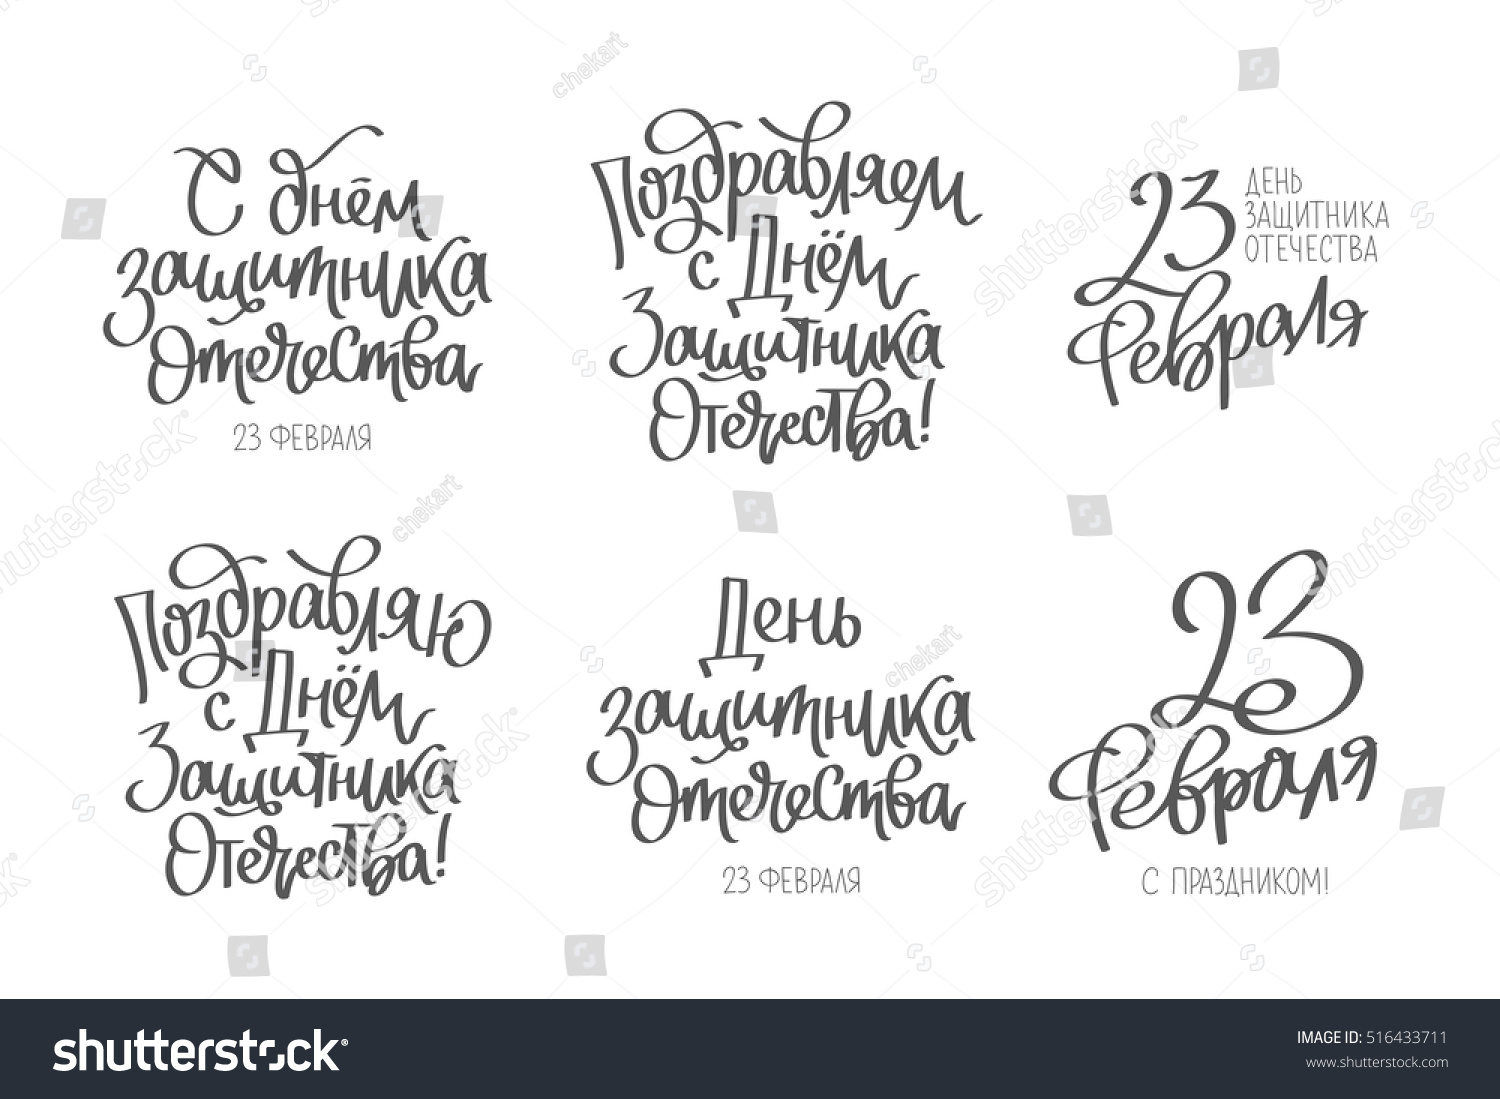 Russian Love Quotes Set Quotes On Day Defender Fatherland Stock Vector 516433711